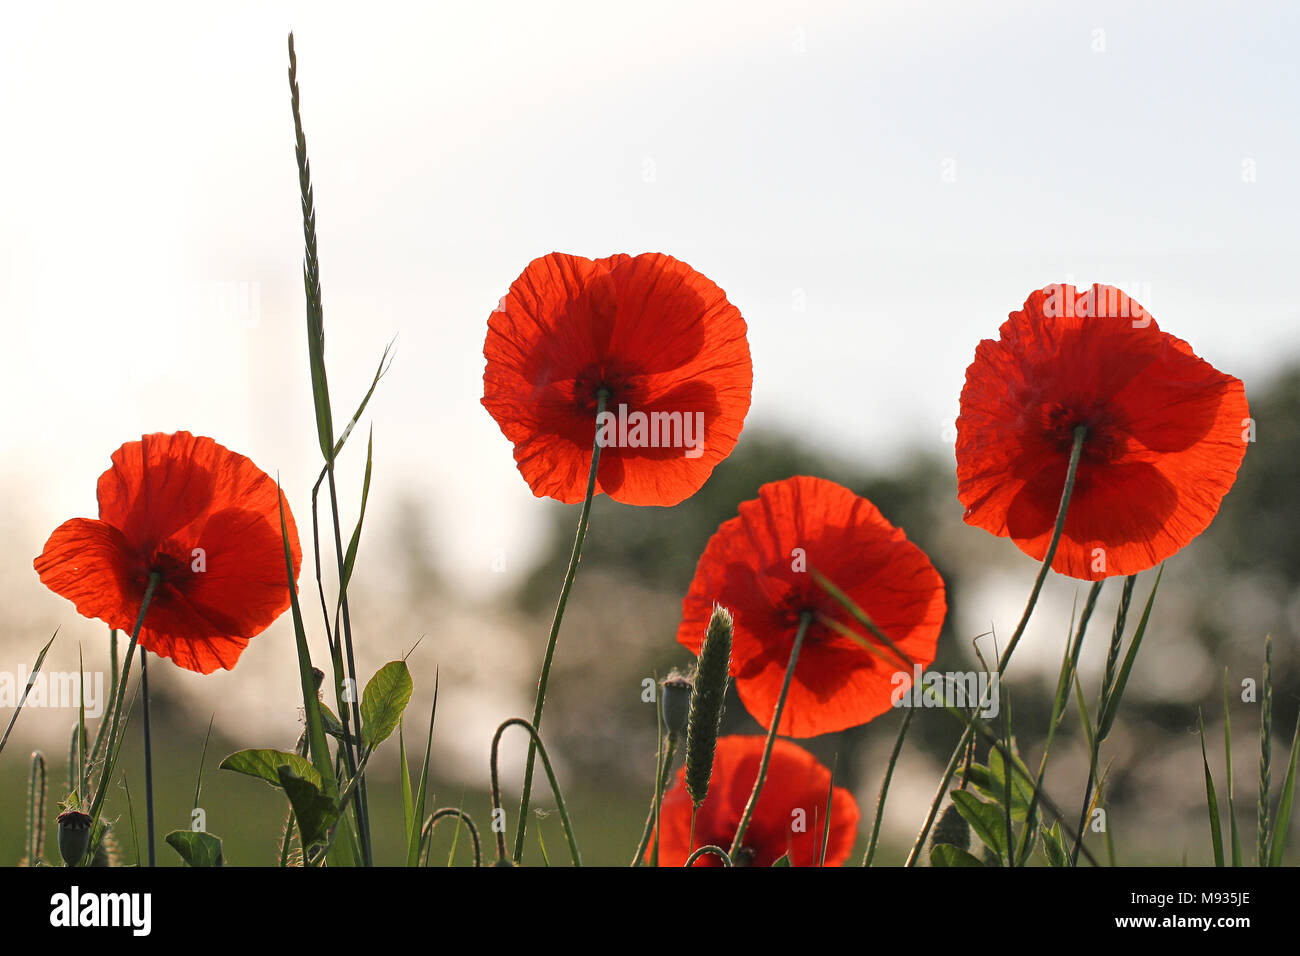 Poppy flowers or papaver dubium poppies with the light behind poppy flowers or papaver dubium poppies with the light behind remembrance flower first world war remembering flanders fields poem by john mccrae mightylinksfo